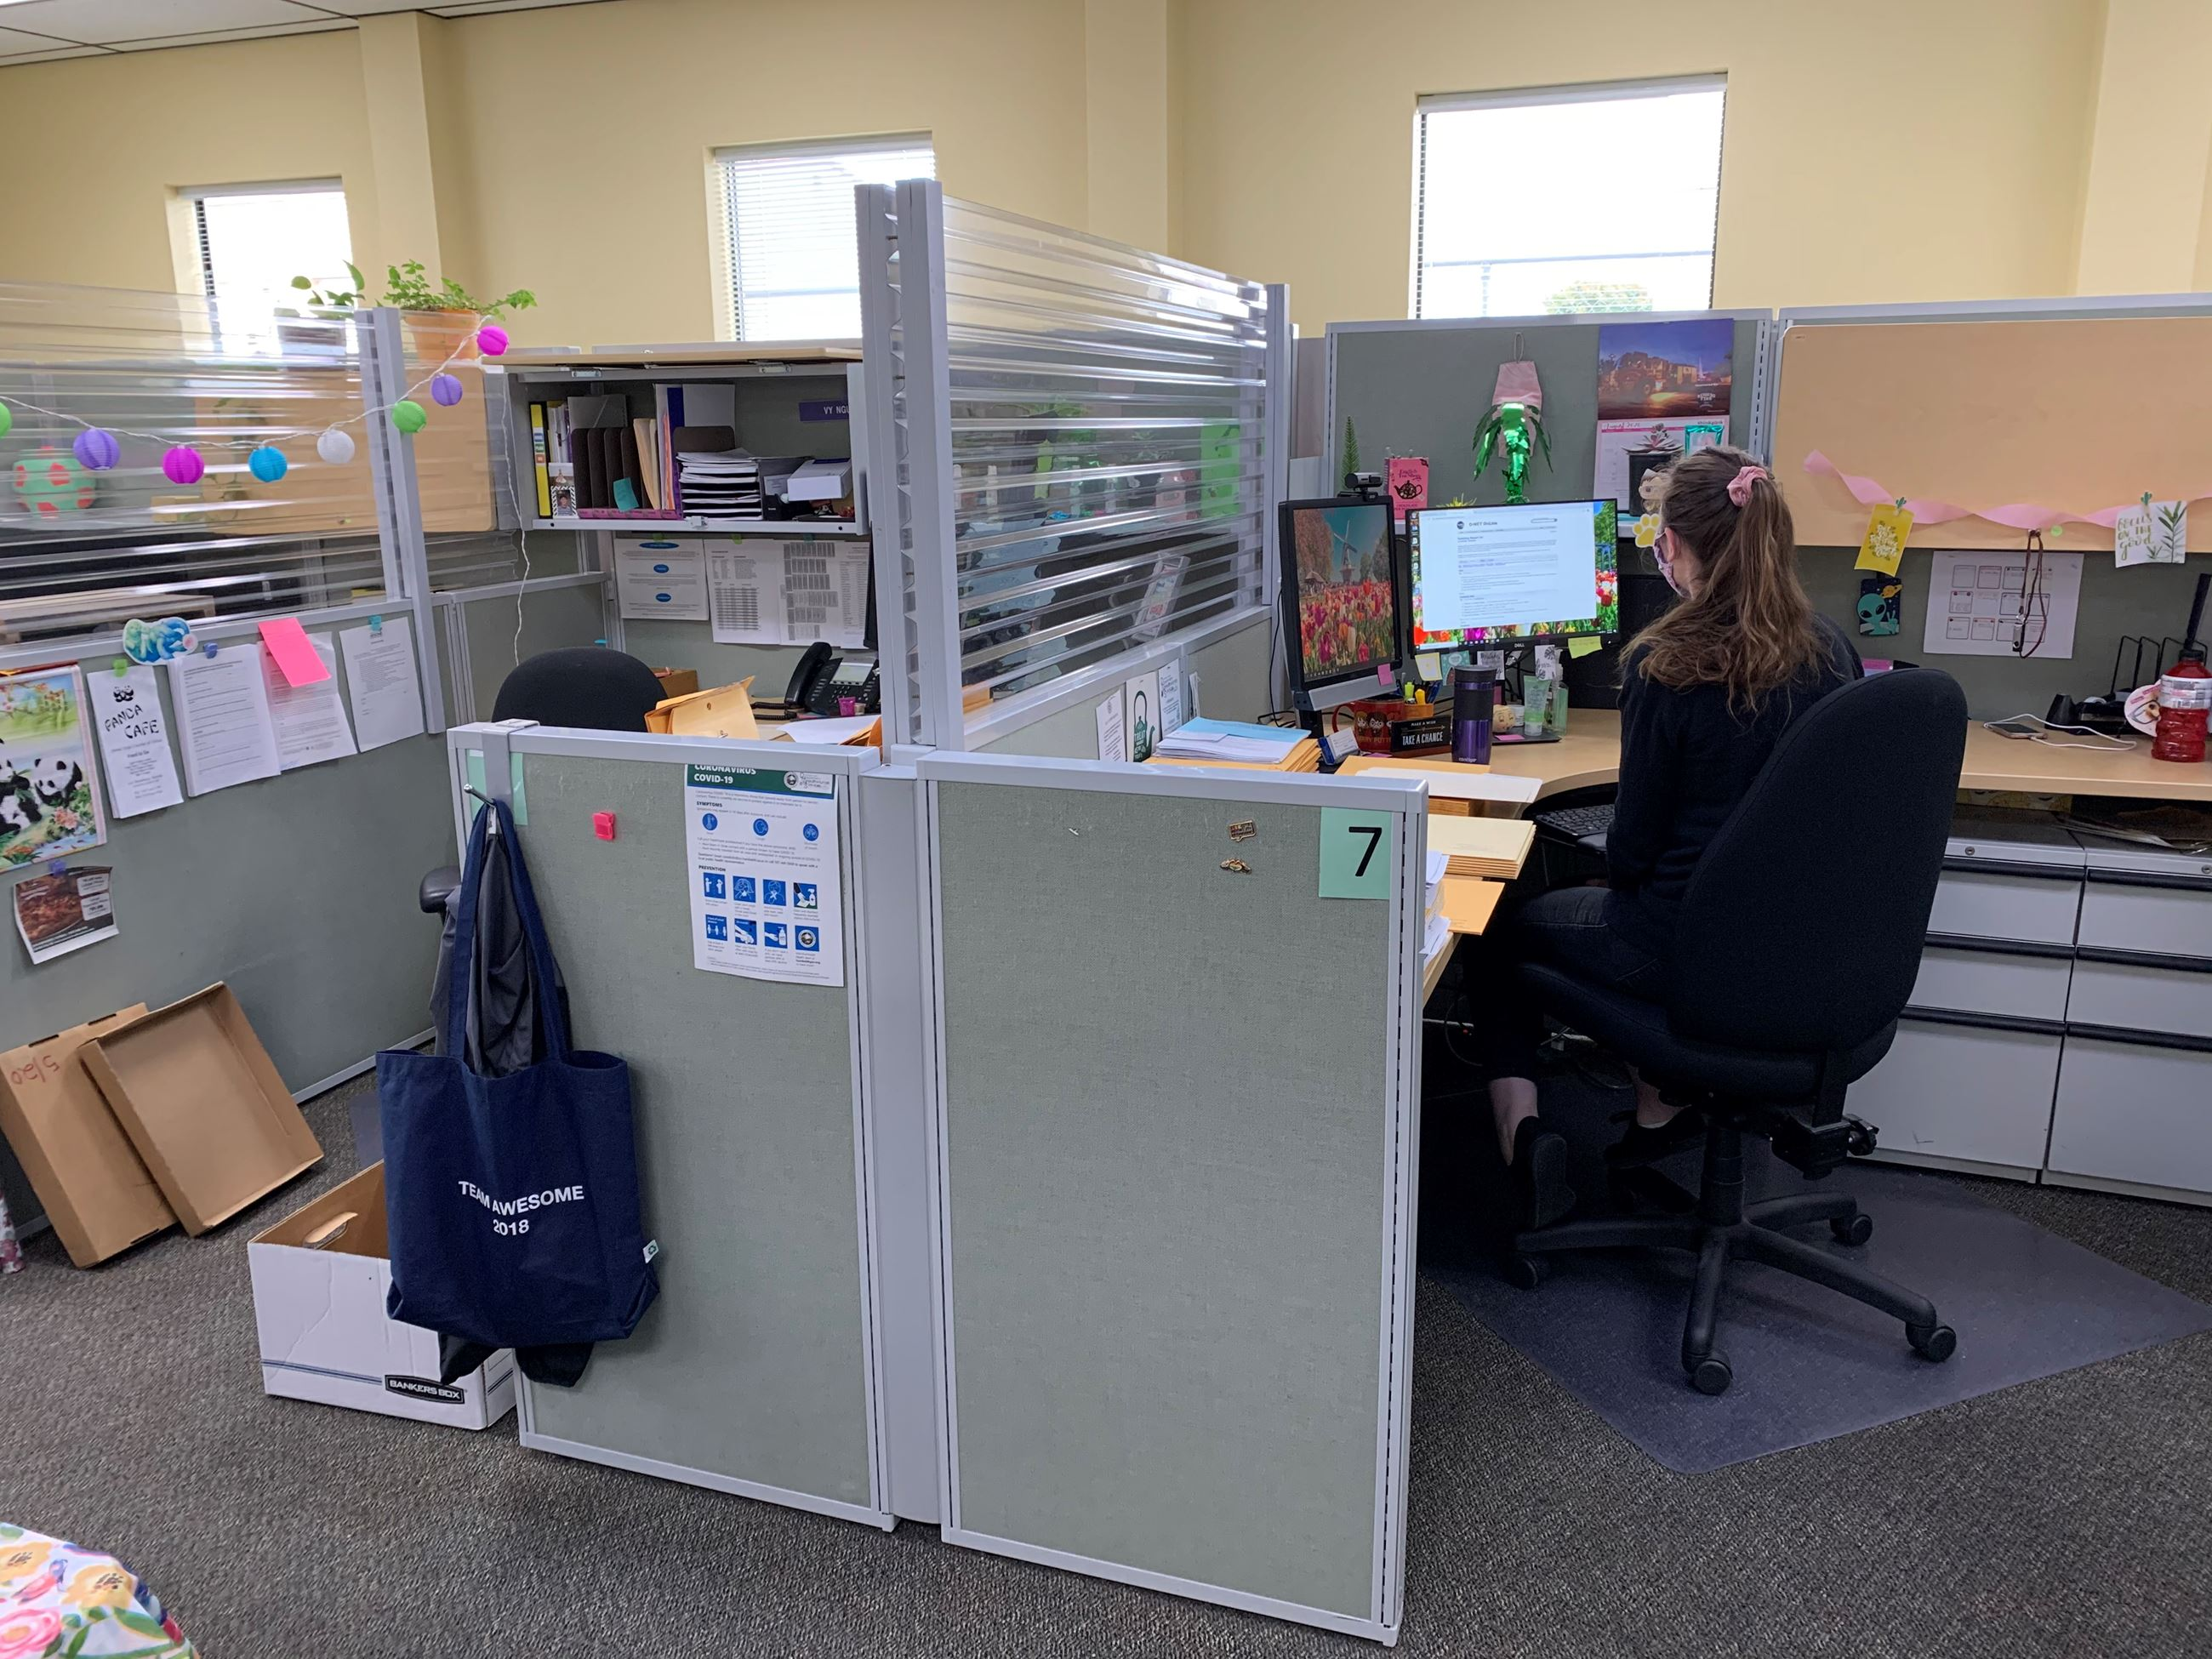 DHHS employee at Koster campus at her workstation featuring dividers installed by Helping Humboldt